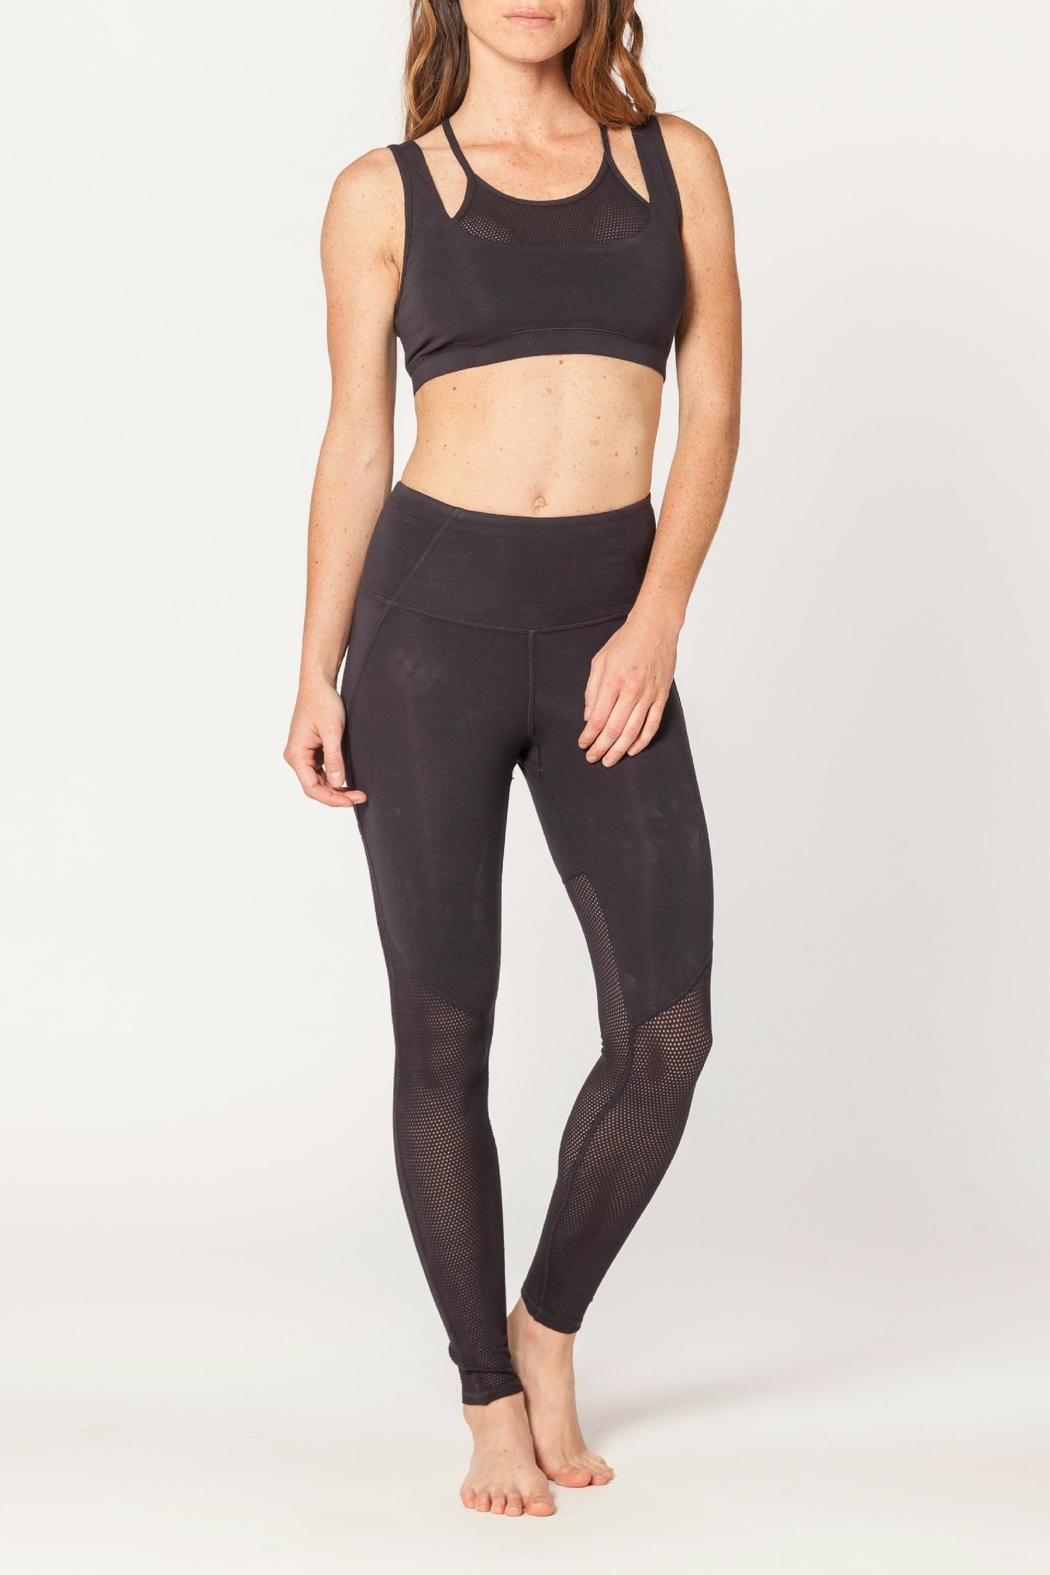 Electric & Rose Pier Legging - Front Cropped Image